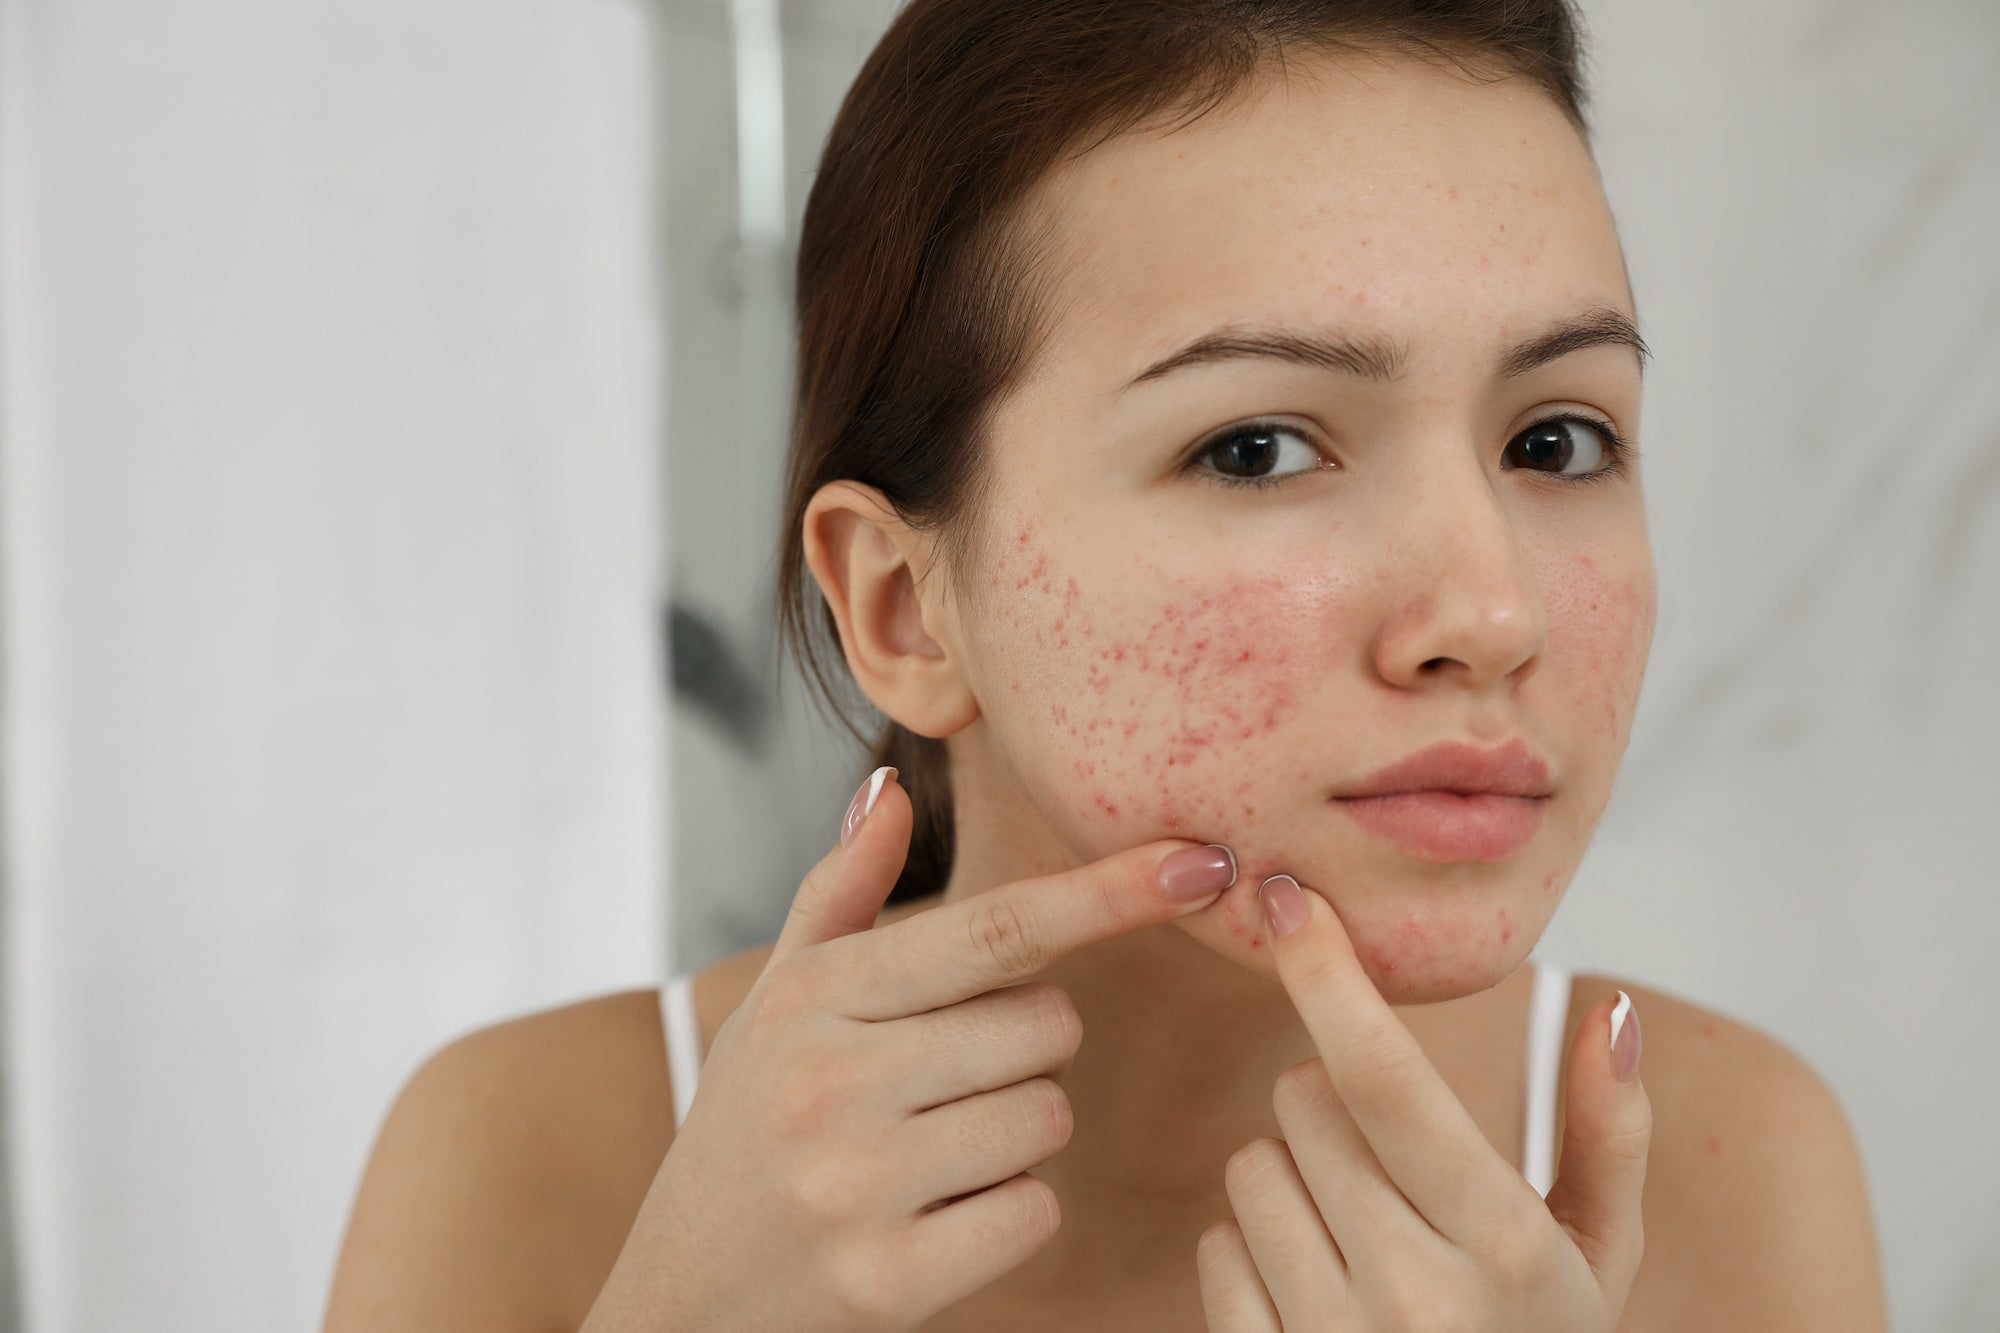 5 Types Of Acne Scars And Why You Should Care